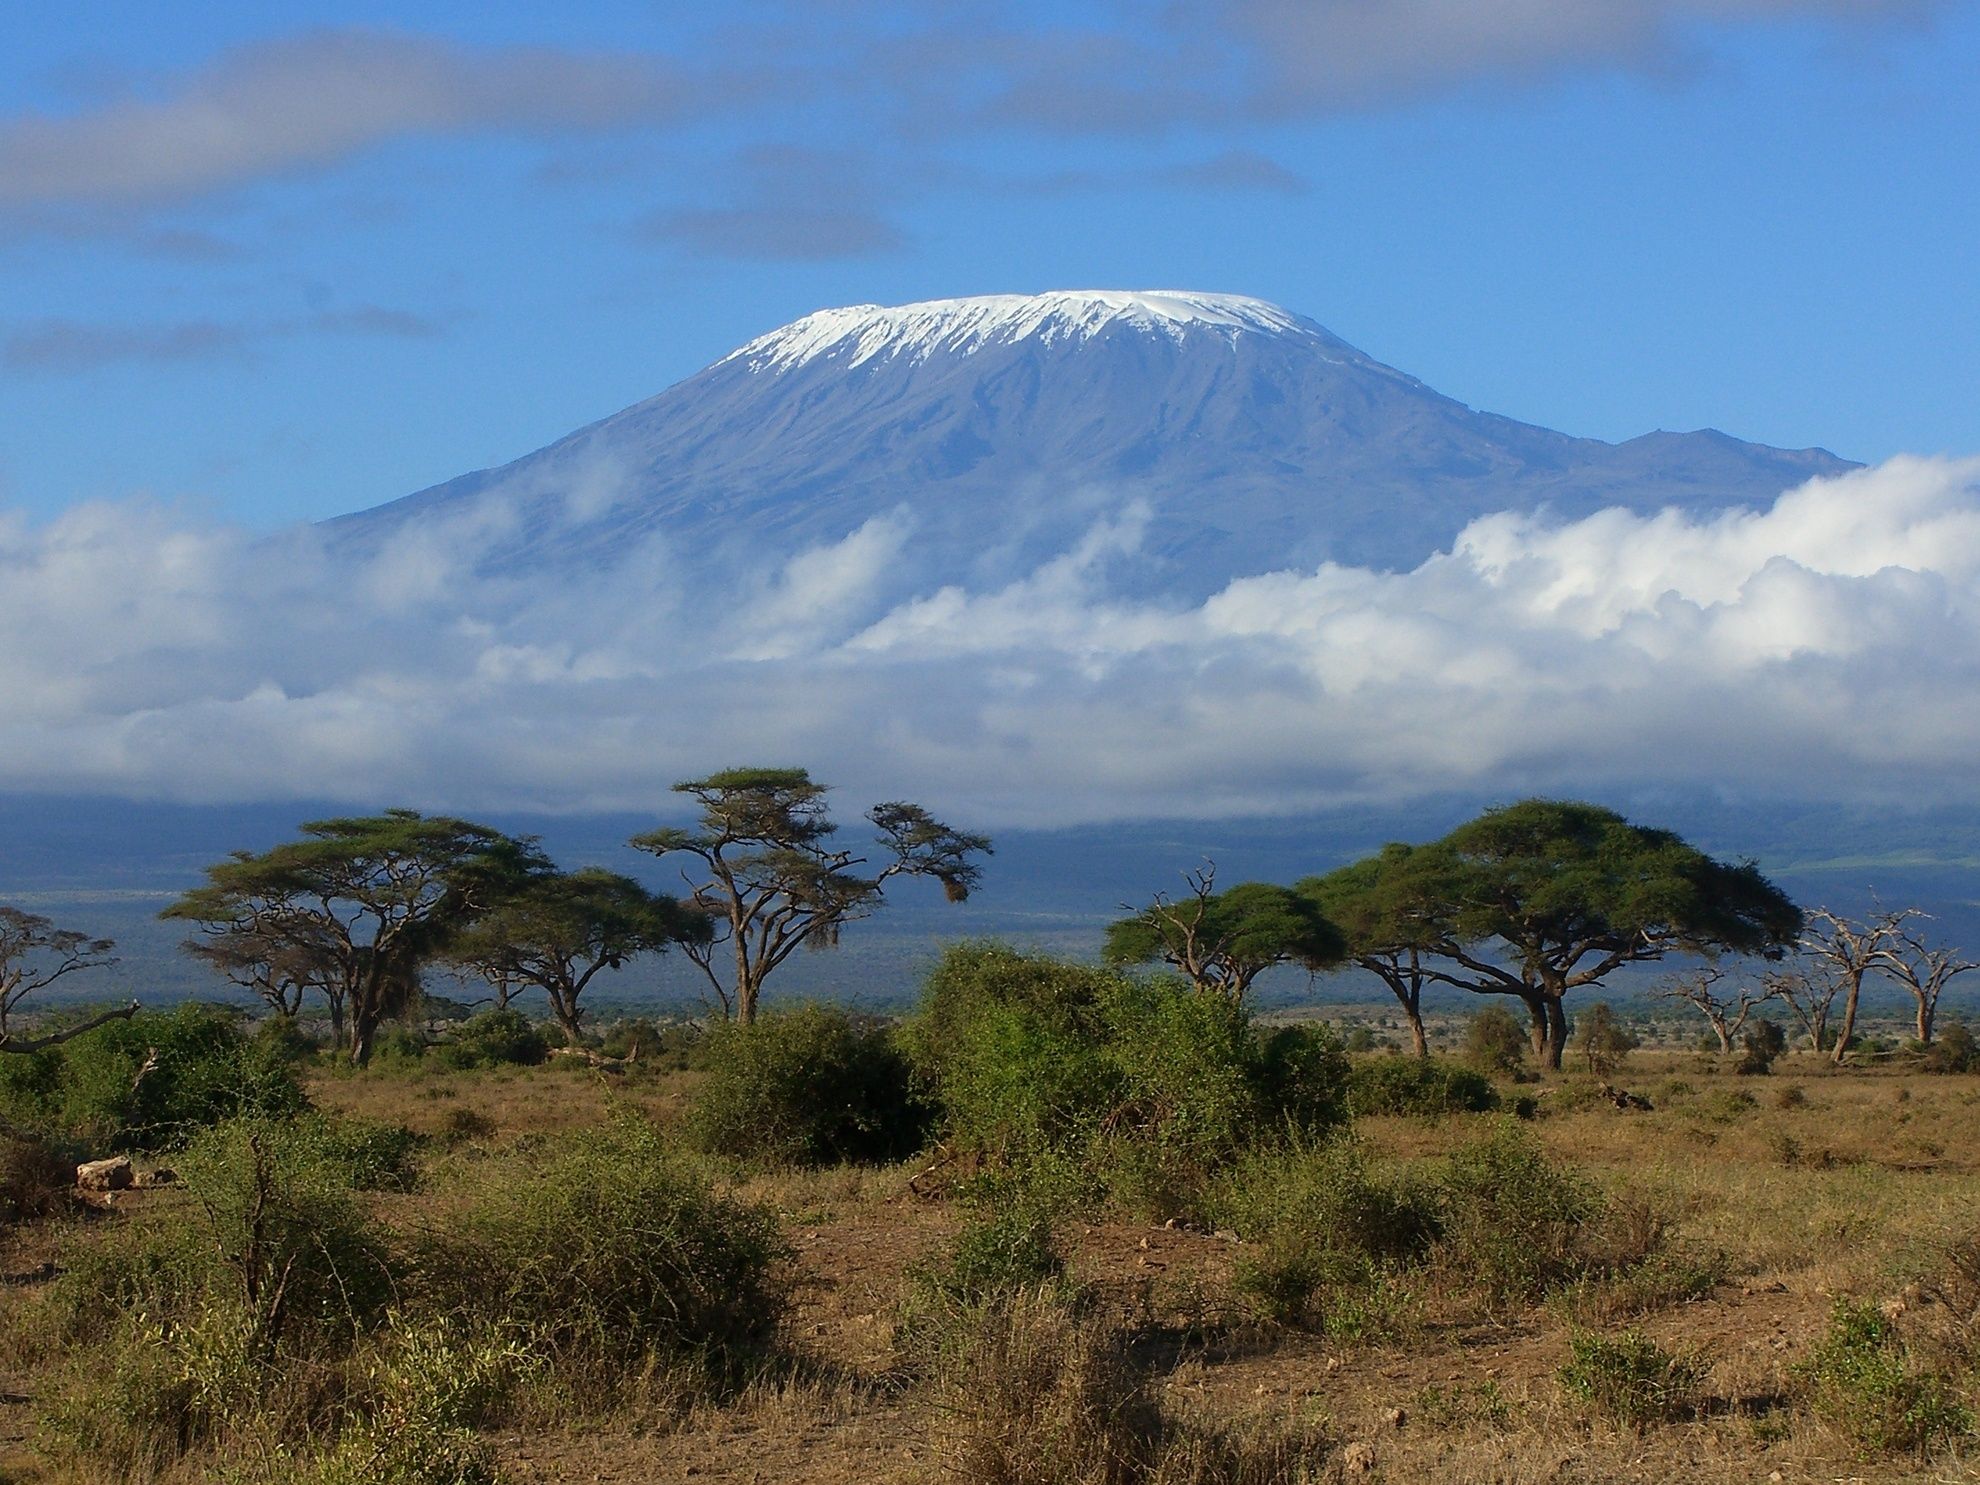 Read more about the article The path less trodden – Alternative routes up Mount Kilimanjaro